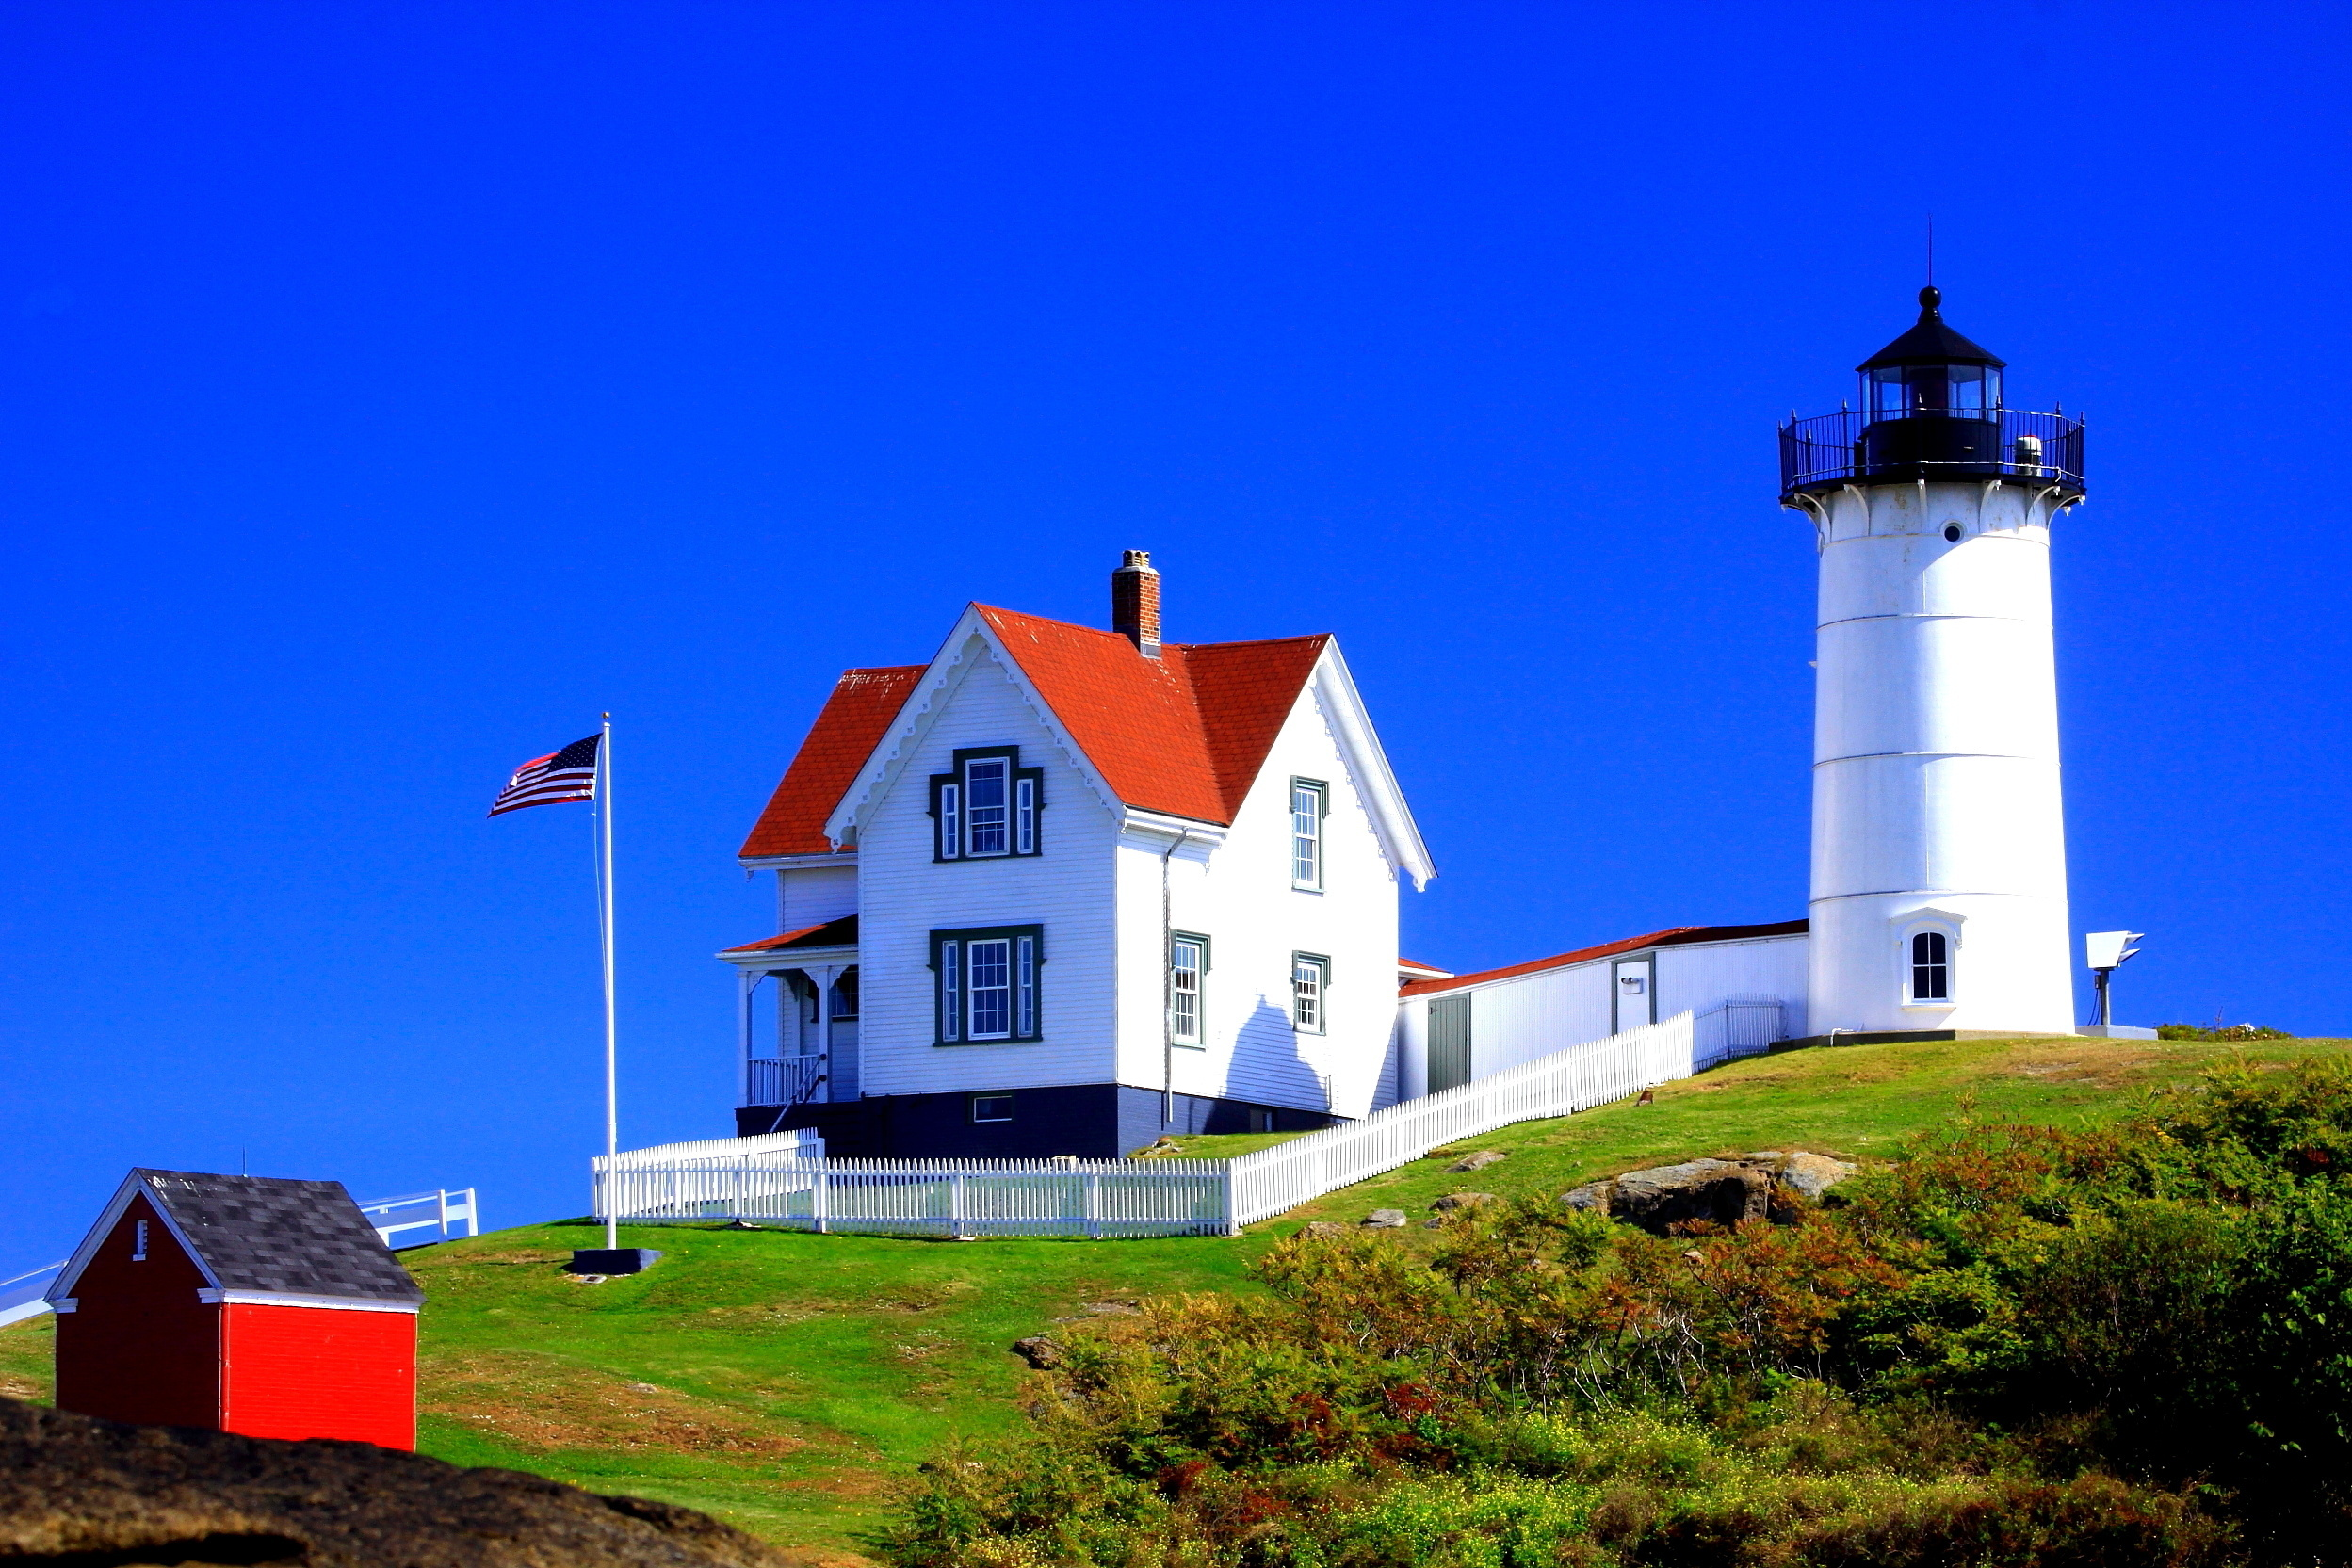 Lighthouse computer wallpapers desktop backgrounds for New house wallpaper